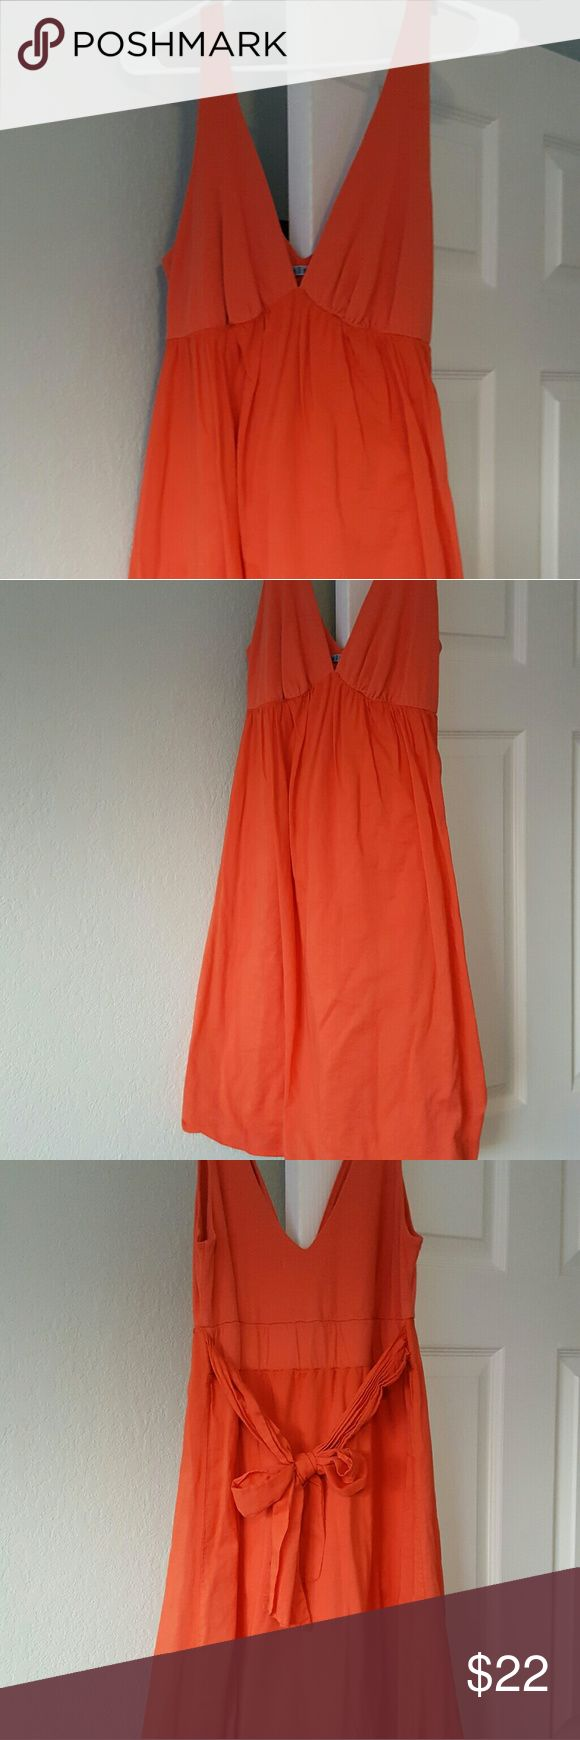 GORGEOUS Coral Dress by Velvet, Graham & Spencer Really beautiful and comfy tie back coral colored dress by Velvet. In like new condition. Size Large. Velvet Dresses Midi